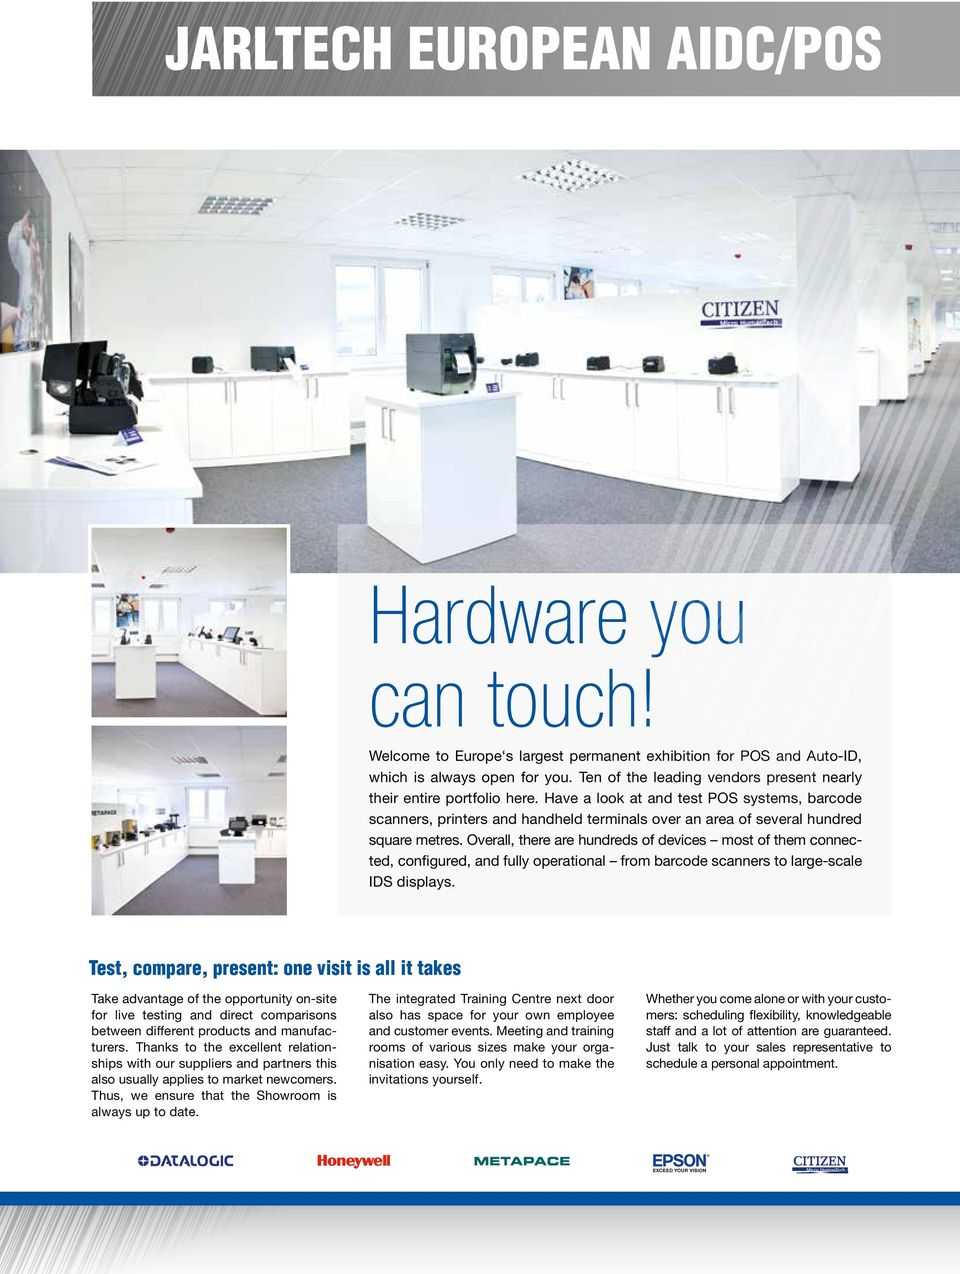 Have a look at and test POS systems, barcode scanners, printers and handheld terminals over an area of several hundred square metres.